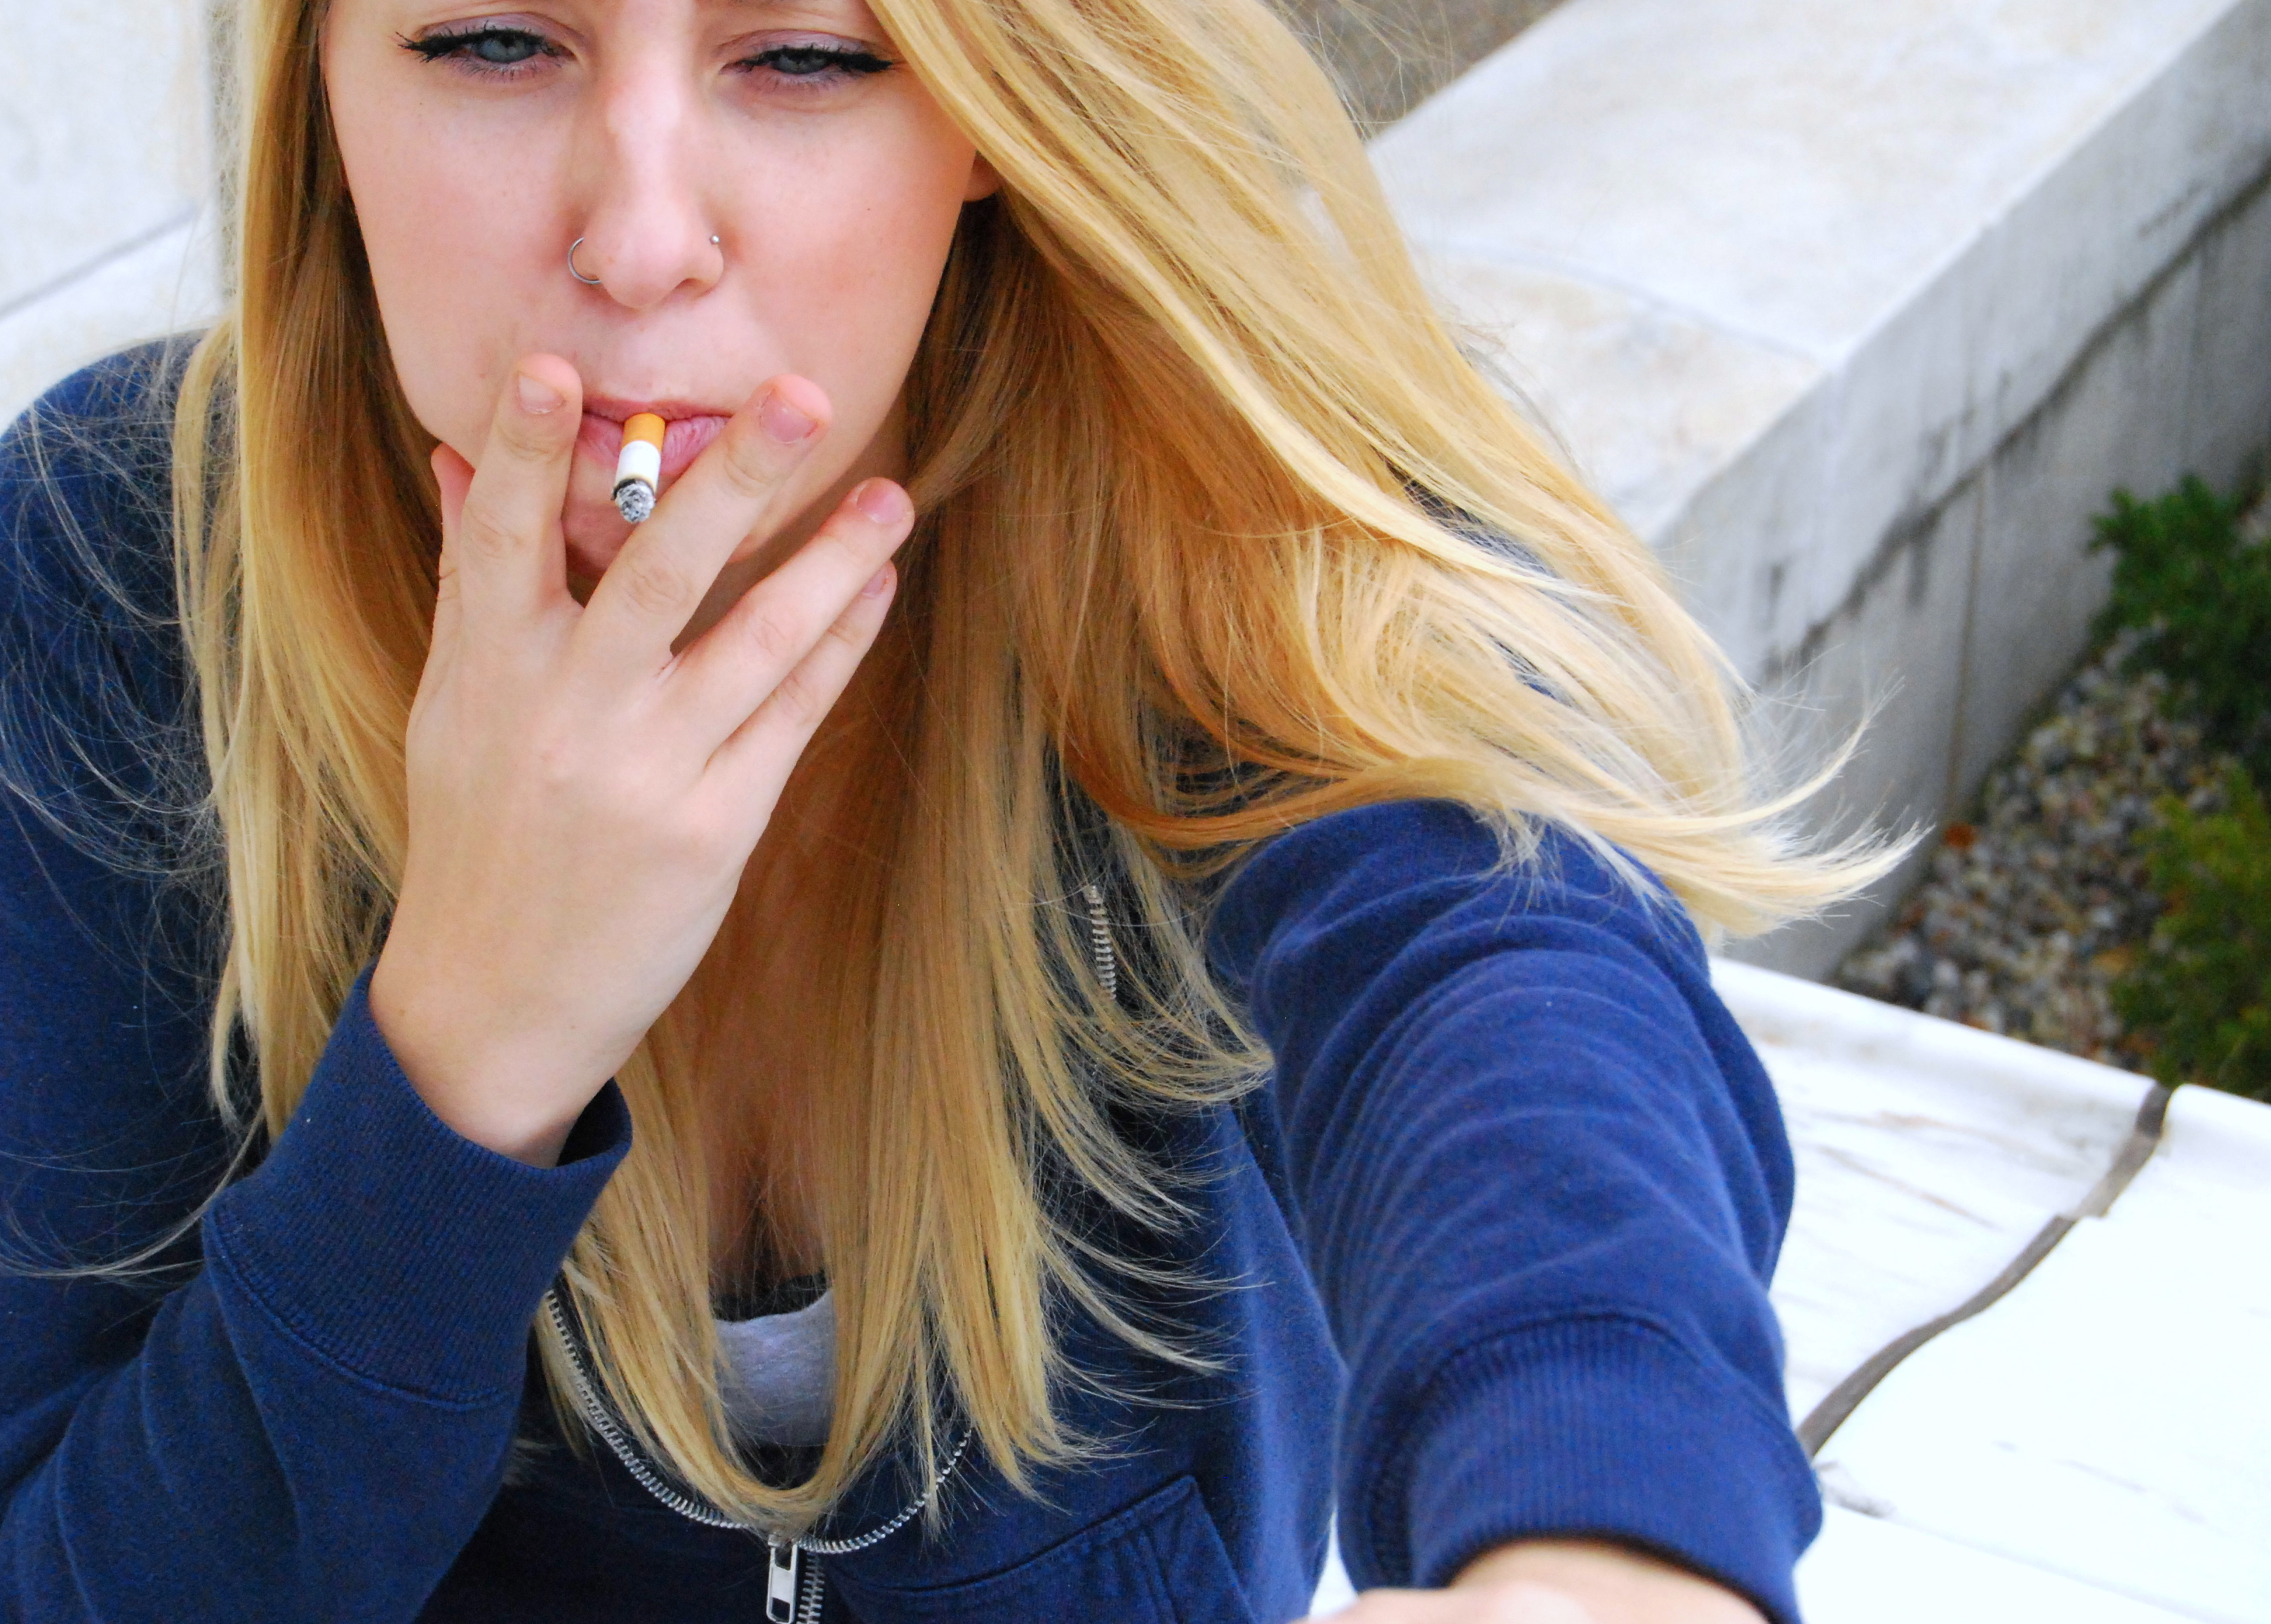 Skinny blonde teen smoking this gave brice an idea break